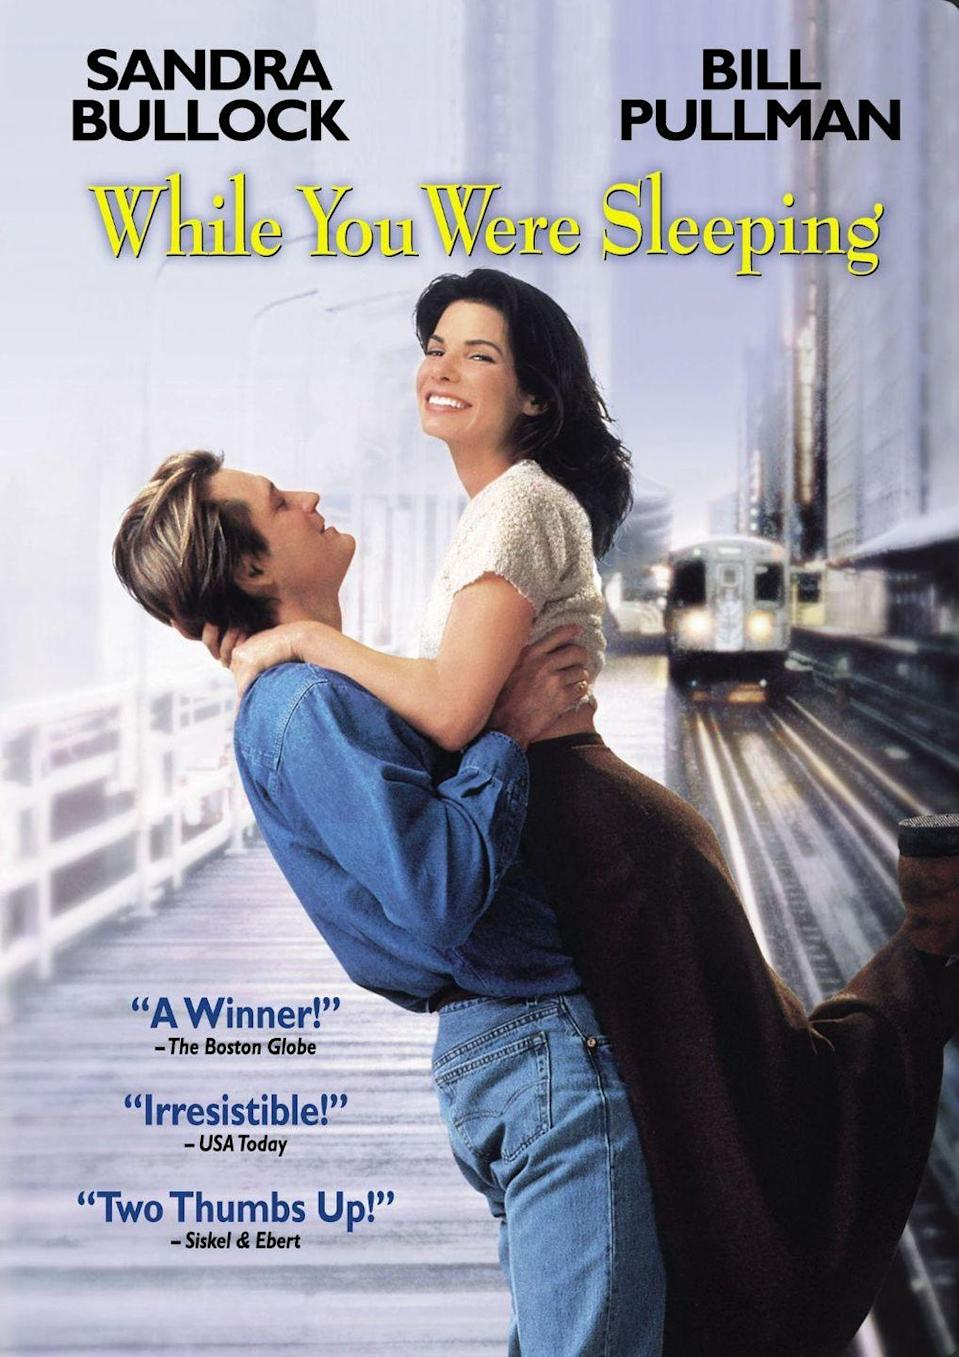 """<p>It's not X-mas without a classic holiday rom-com! Sandra Bullock charms in this one about a subway worker who saves a man's life on Christmas Day, only to eventually fall in love with his brother.</p><p><a class=""""link rapid-noclick-resp"""" href=""""https://www.amazon.com/While-Were-Sleeping-Bill-Pullman/dp/B003QS64XU?tag=syn-yahoo-20&ascsubtag=%5Bartid%7C10055.g.1315%5Bsrc%7Cyahoo-us"""" rel=""""nofollow noopener"""" target=""""_blank"""" data-ylk=""""slk:WATCH NOW"""">WATCH NOW</a></p>"""